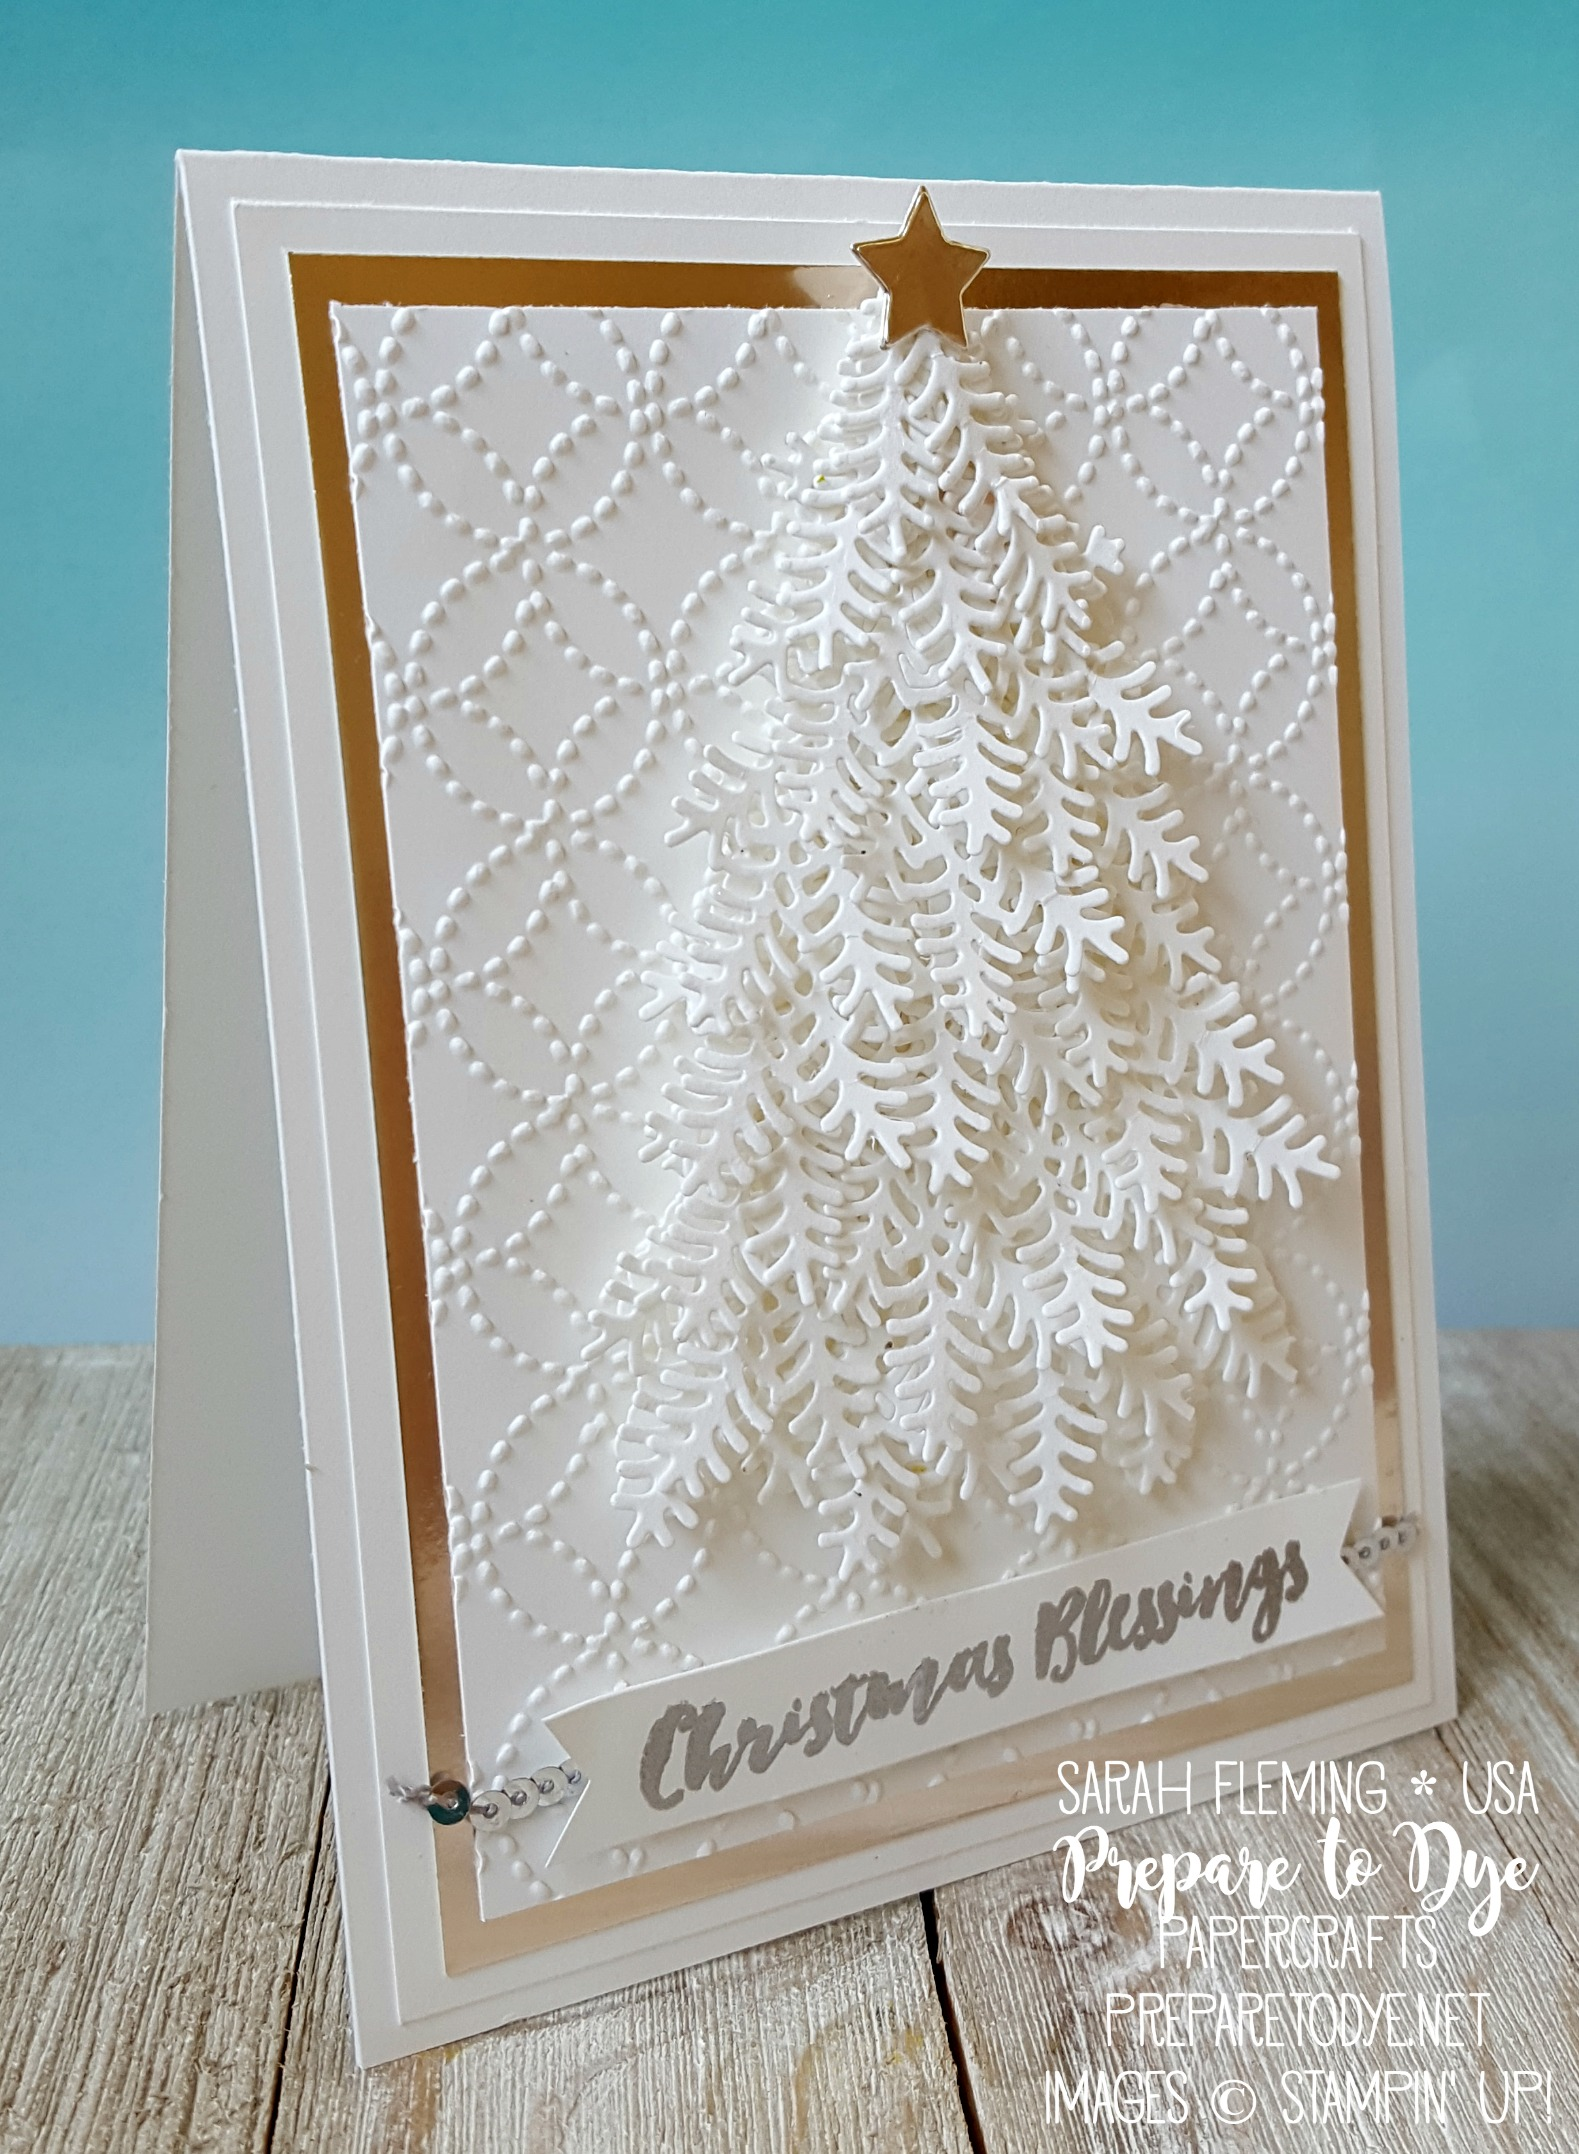 Stampin' Up! Holiday Catalog sneak peek - Christmas Staircase thinlits, Quilt Top Embossing Folder, Christmas Pines stamps, new Champagne Foil Sheets